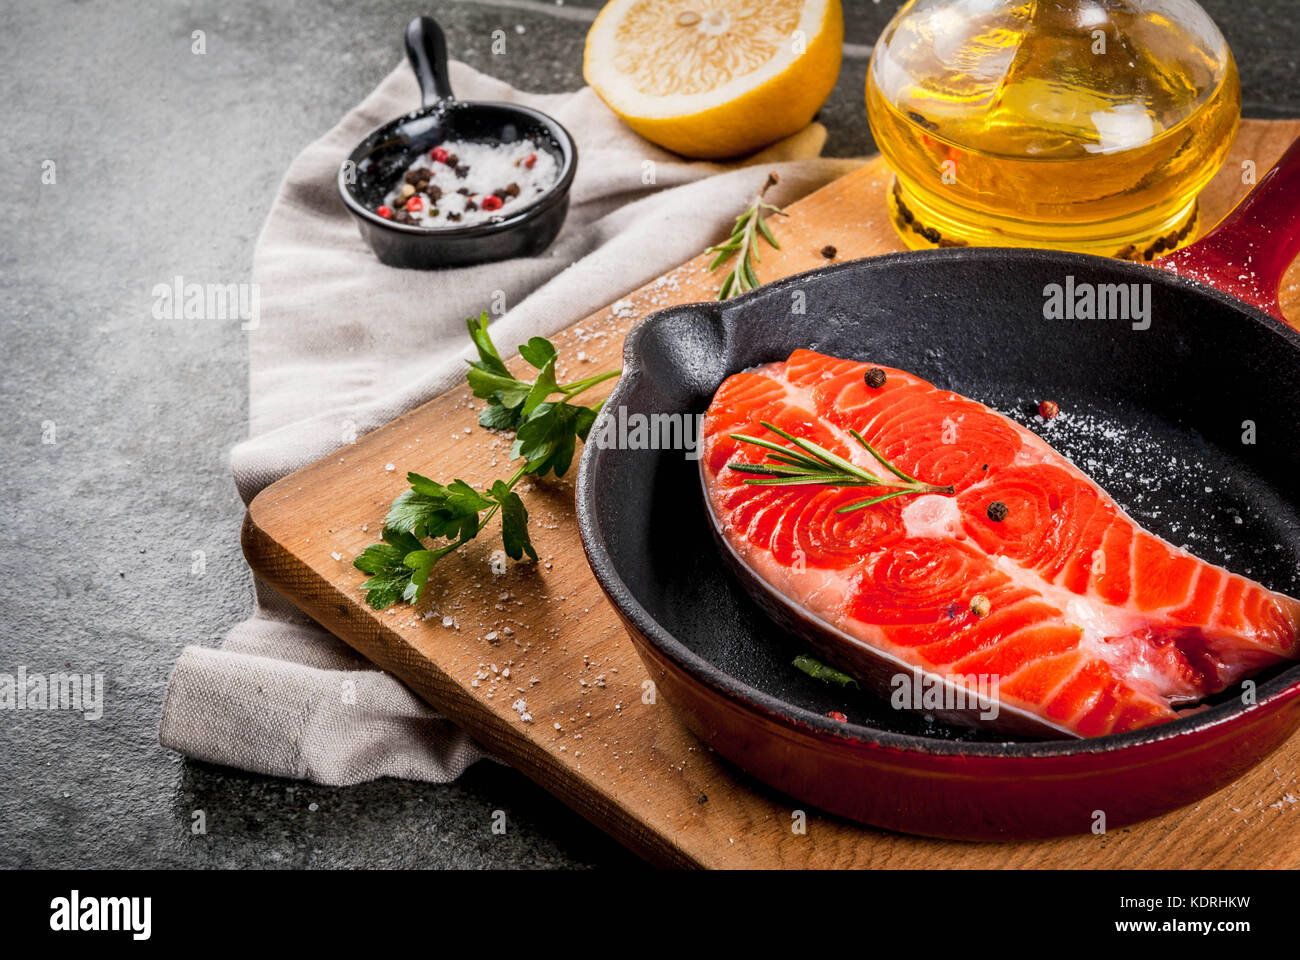 Raw fresh salmon fish with ingredients for cooking - olive oil, lemon, onion, parsley, rosemary, on frying pan, - Stock Image